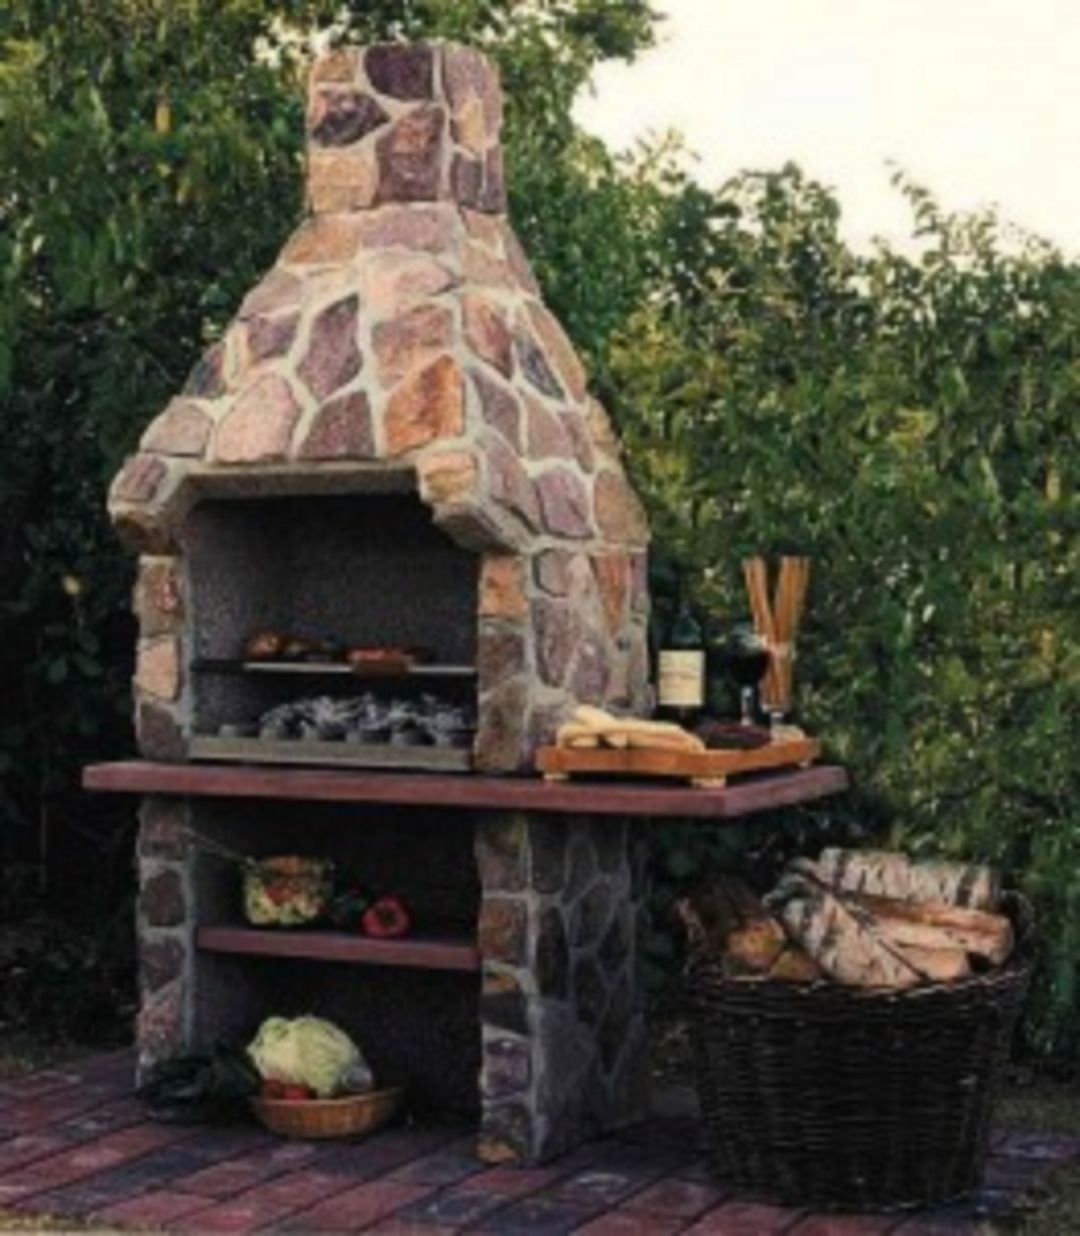 50+ marvelous rustic outdoor fireplace designs for your barbecue